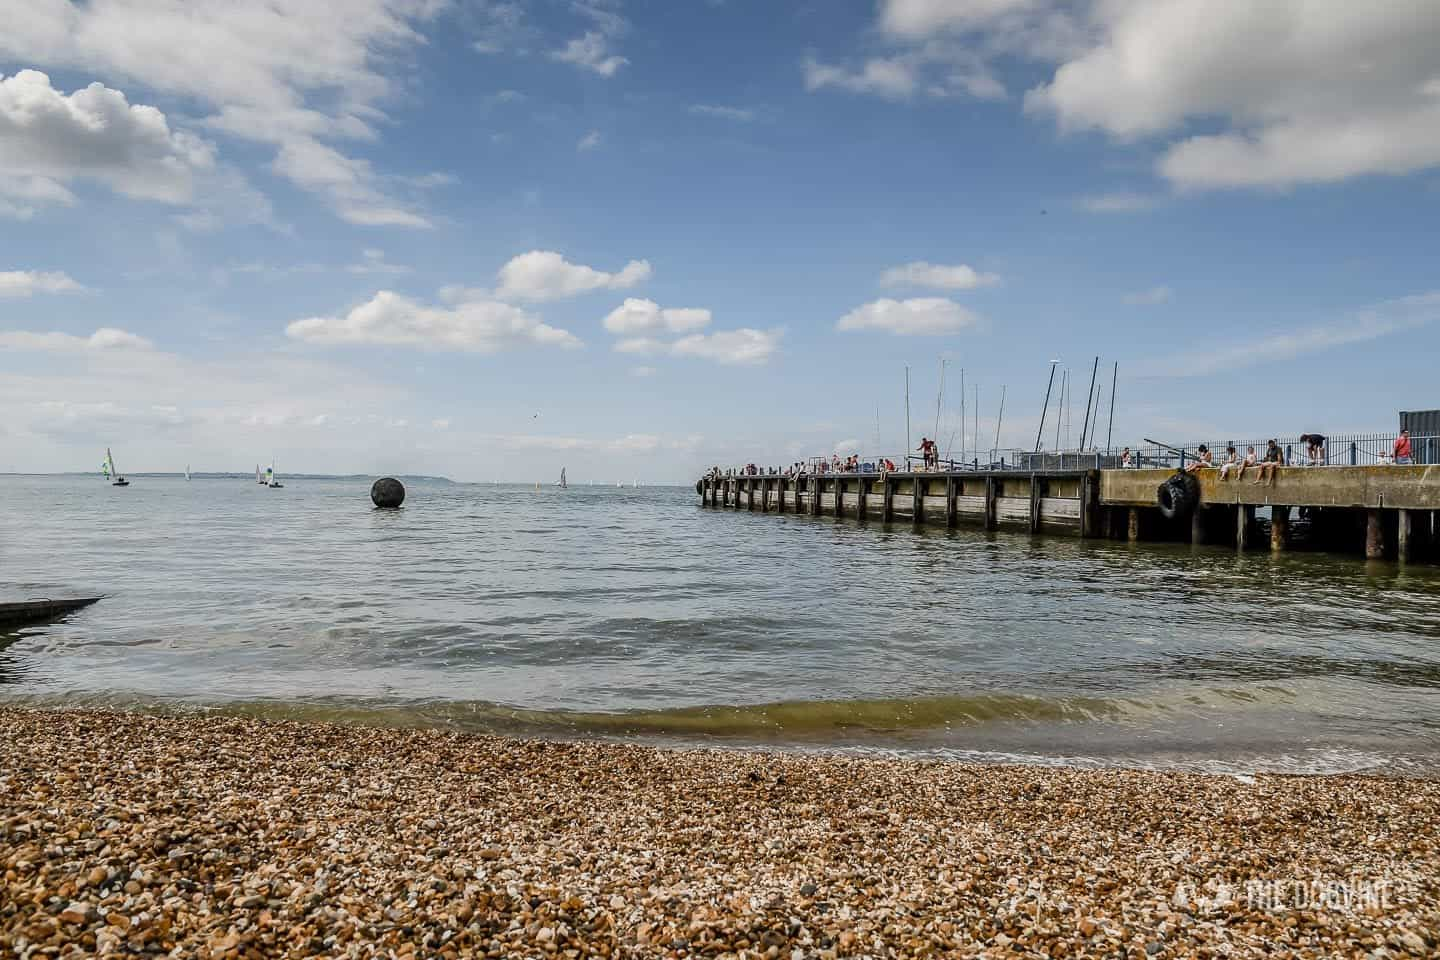 Dogs Day Out With Fetch & Follow On Tour In Dog-Friendly Whitstable 14